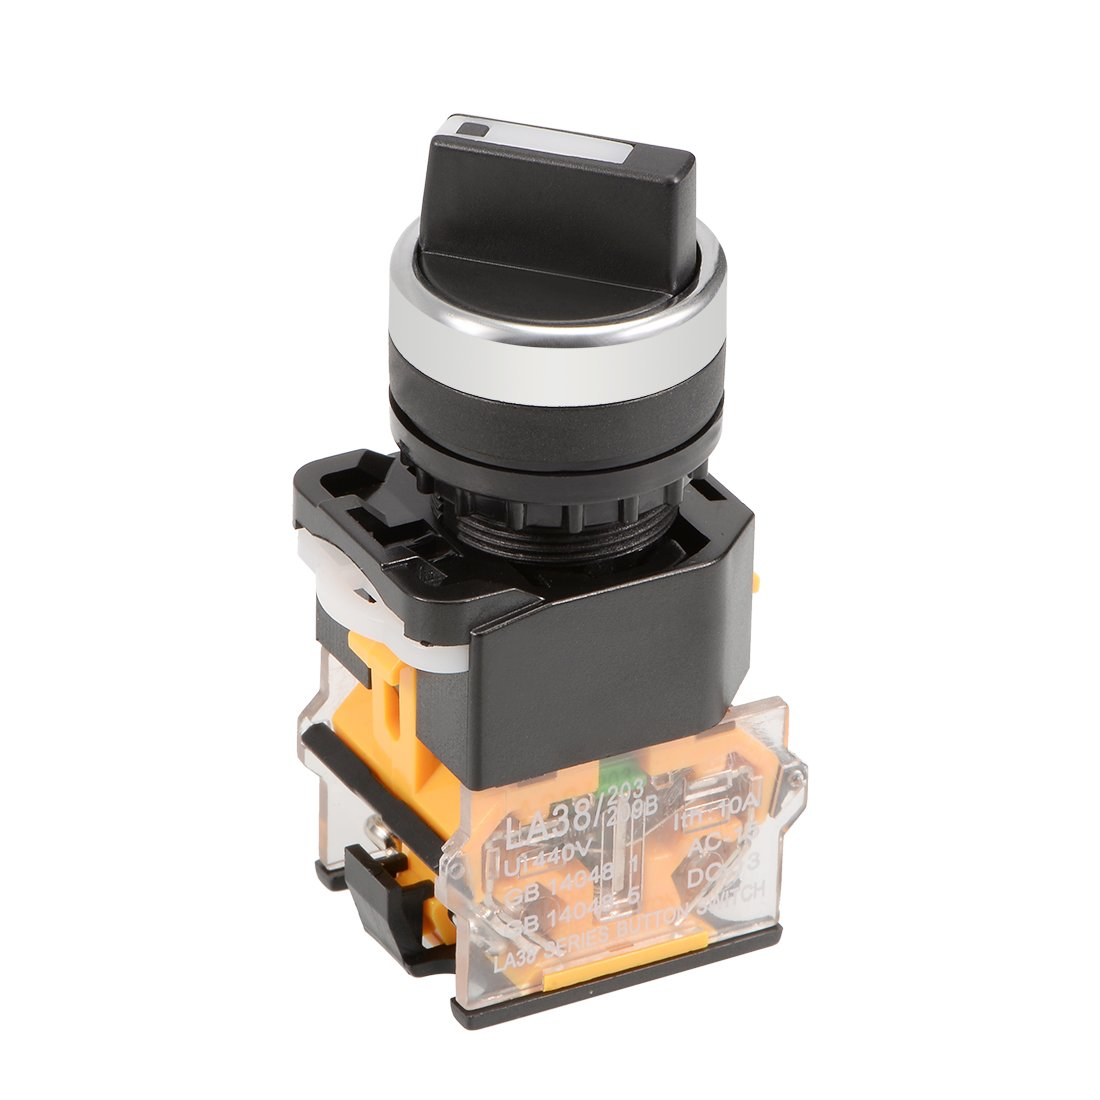 uxcell a14112200ux0184 ZB2-BE101C NO SPST 2 Positions Maintained Rotary Select Selector Switch 600V 10A